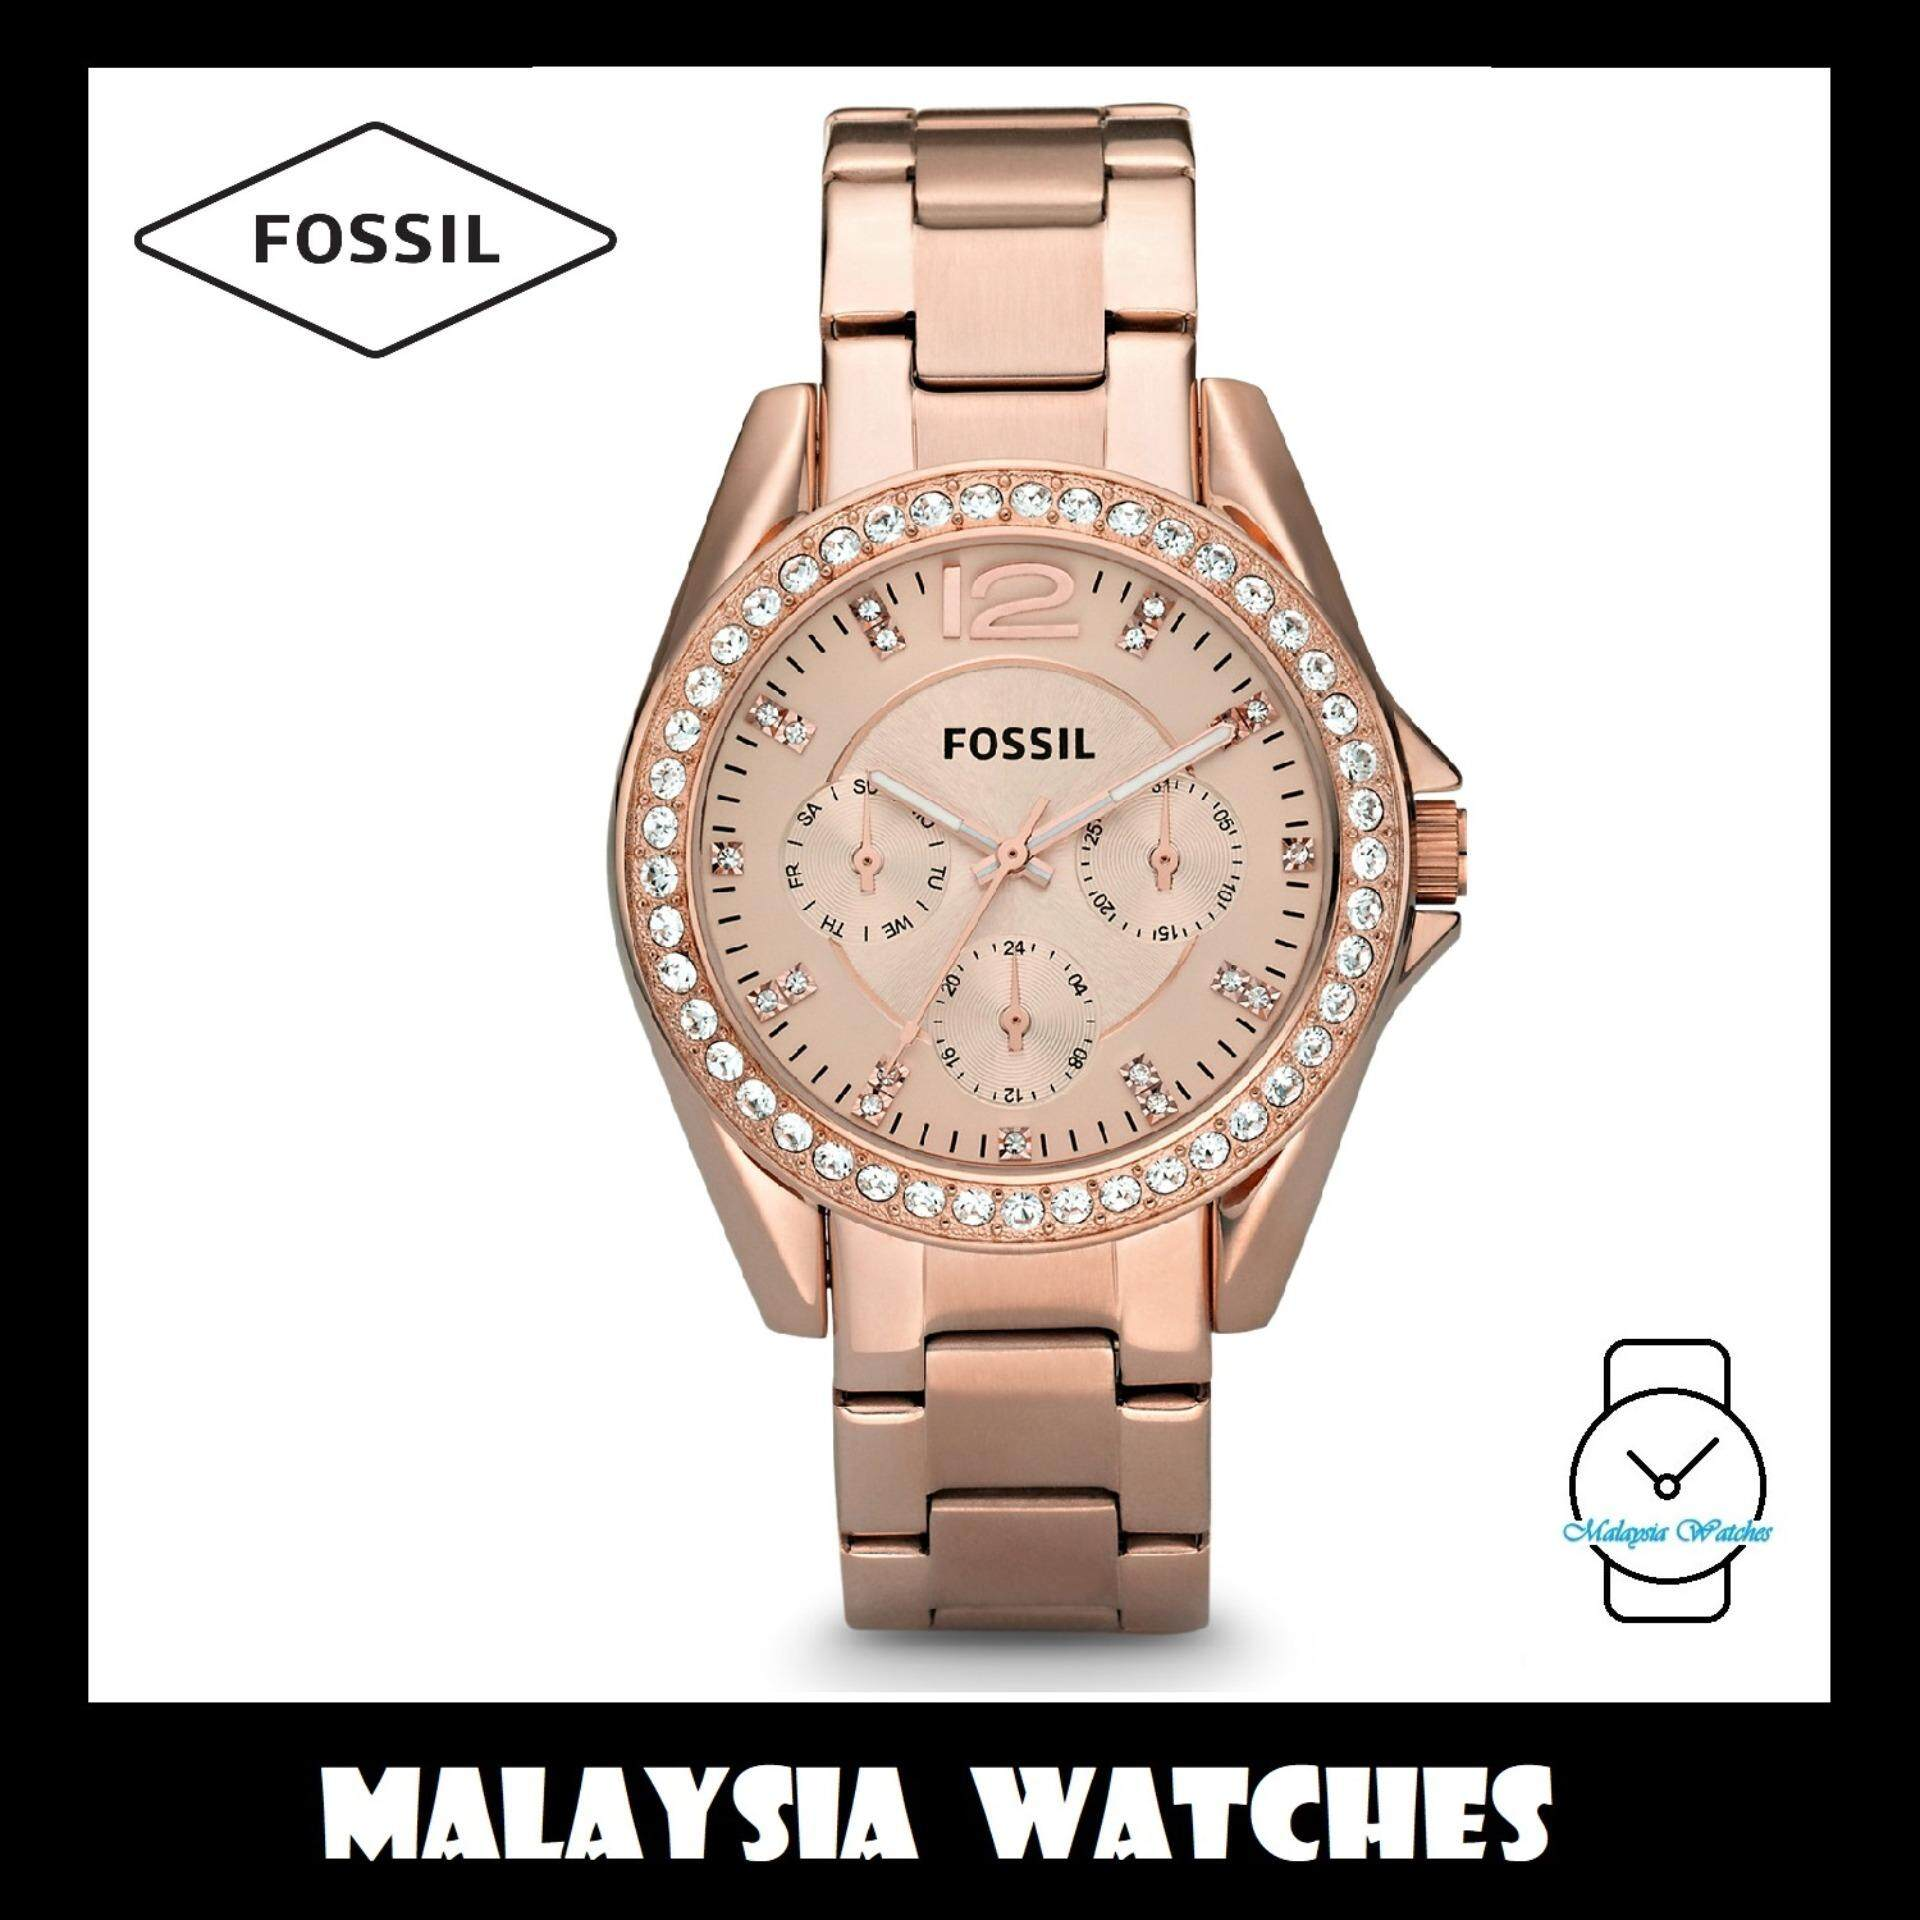 Fossil Products For Men Women The Best Price In Malaysia Jr1436 Jam Tangan Original Pria Fashion